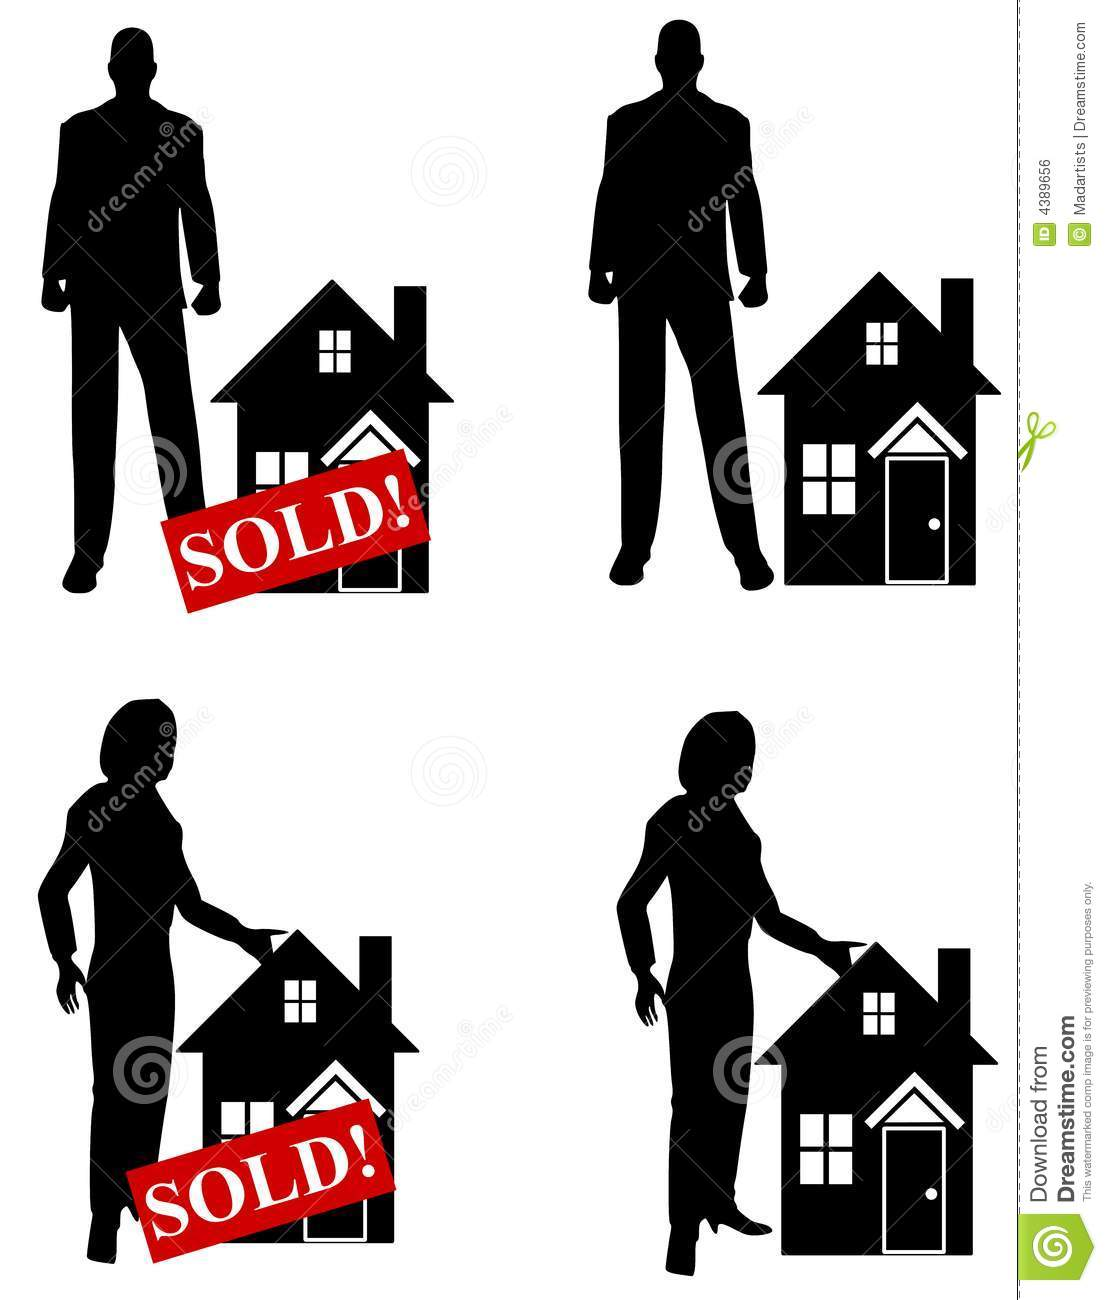 Real Estate Agents With Houses Stock Illustration Illustration Of House Image 4389656